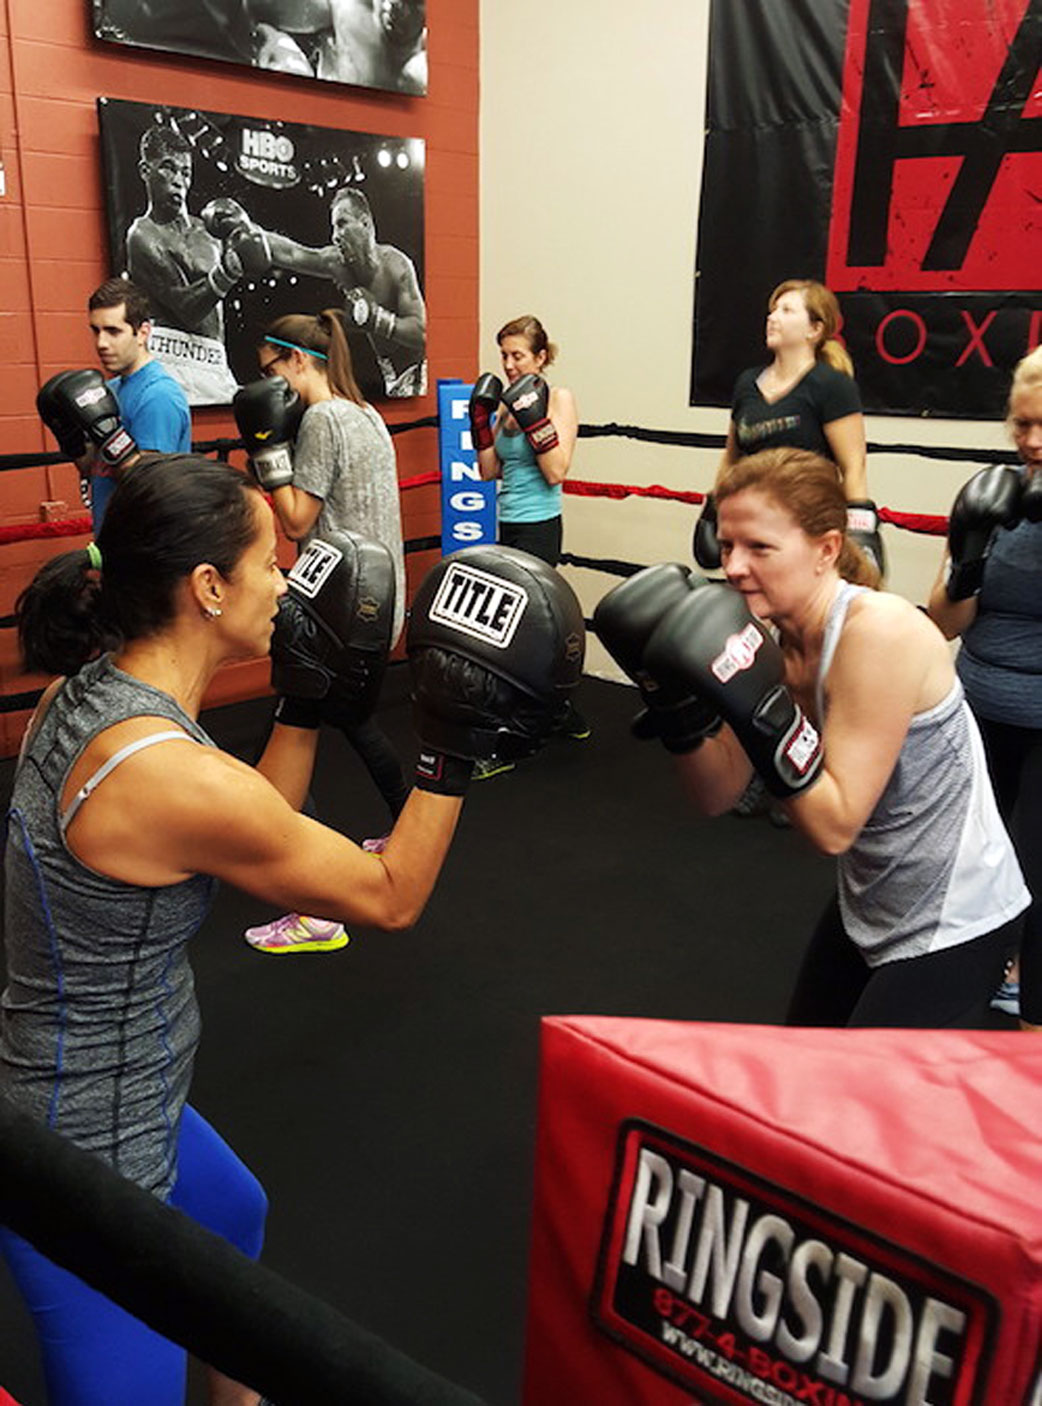 One-on-One fitness training programs with a personal trainer at a modern upscale boxing gym